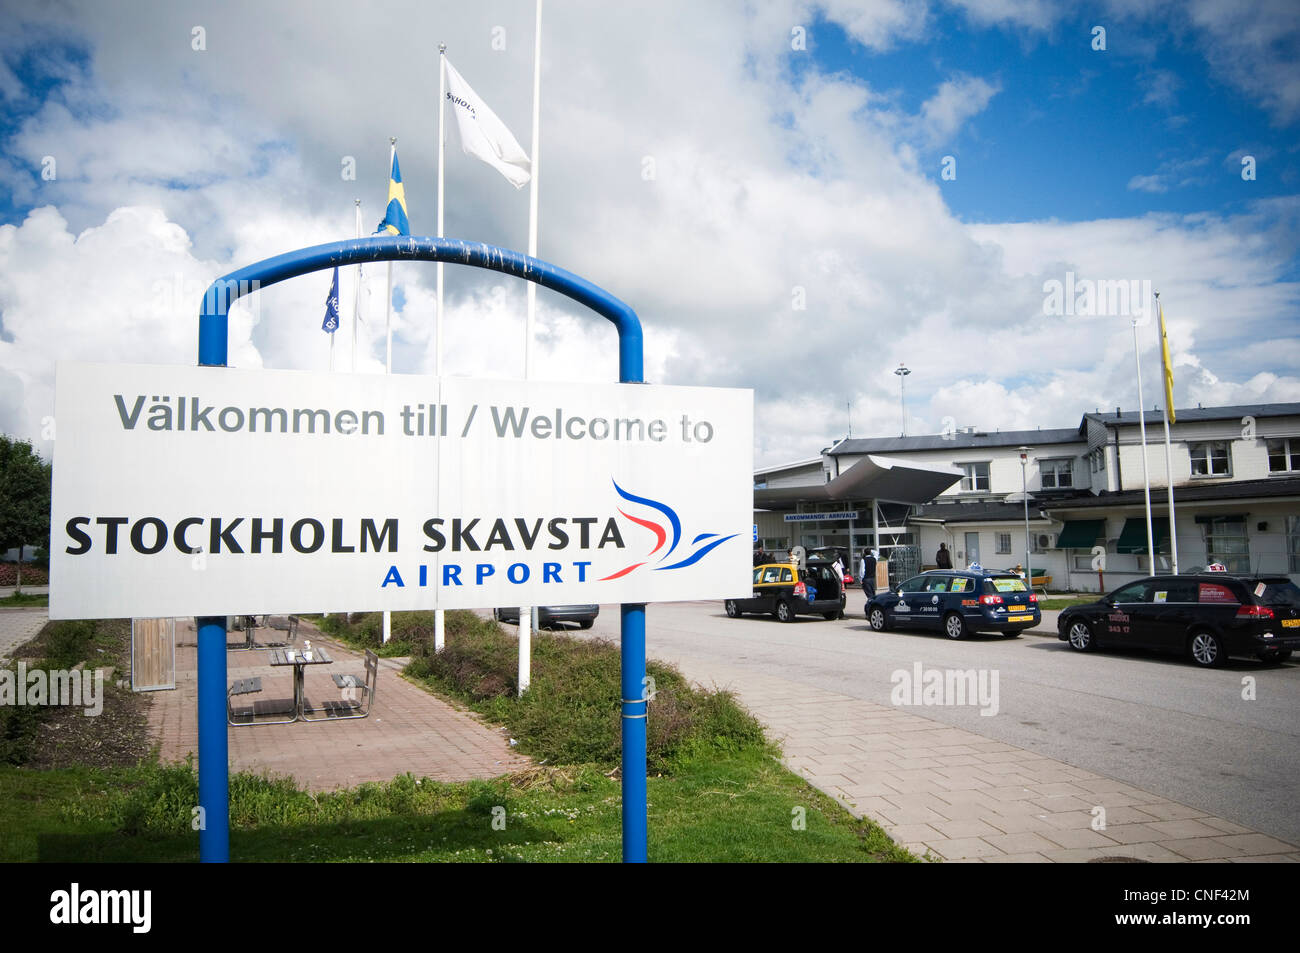 stockholm skavsta airport sweden swedish ryanair destination airports welcome to Stock Photo